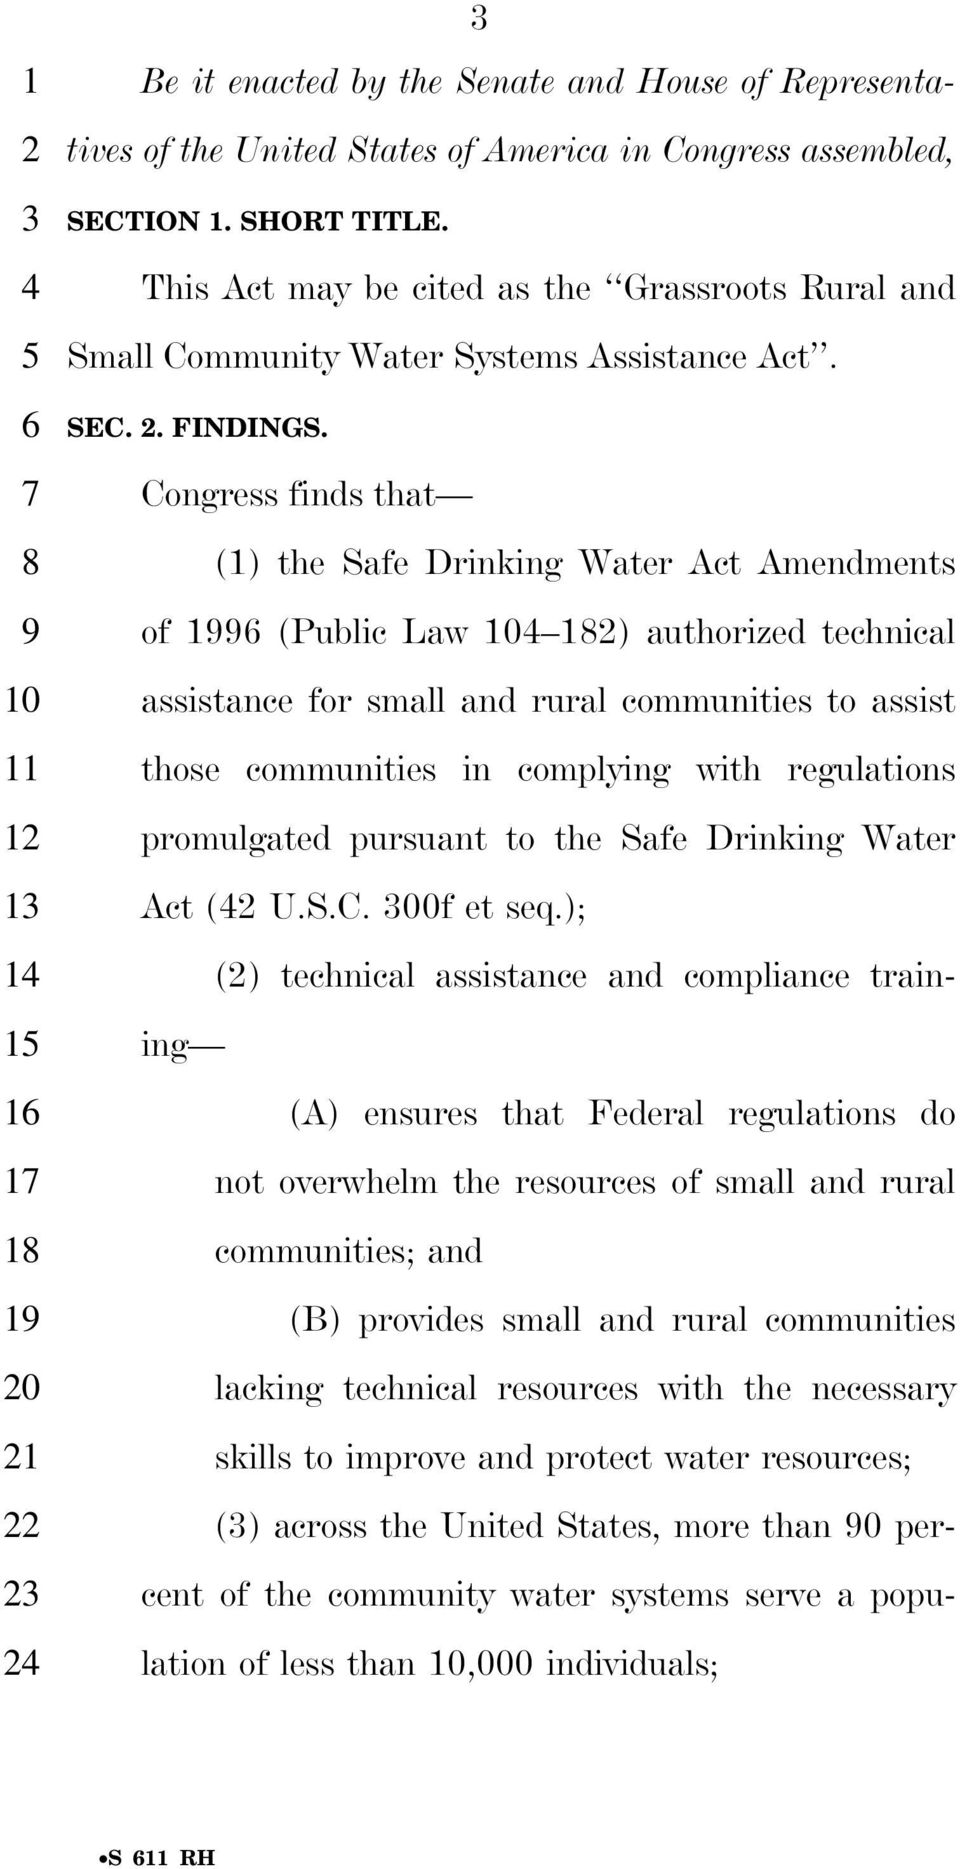 Congress finds that (1) the Safe Drinking Water Act Amendments of 1996 (Public Law 104 182) authorized technical assistance for small and rural communities to assist those communities in complying